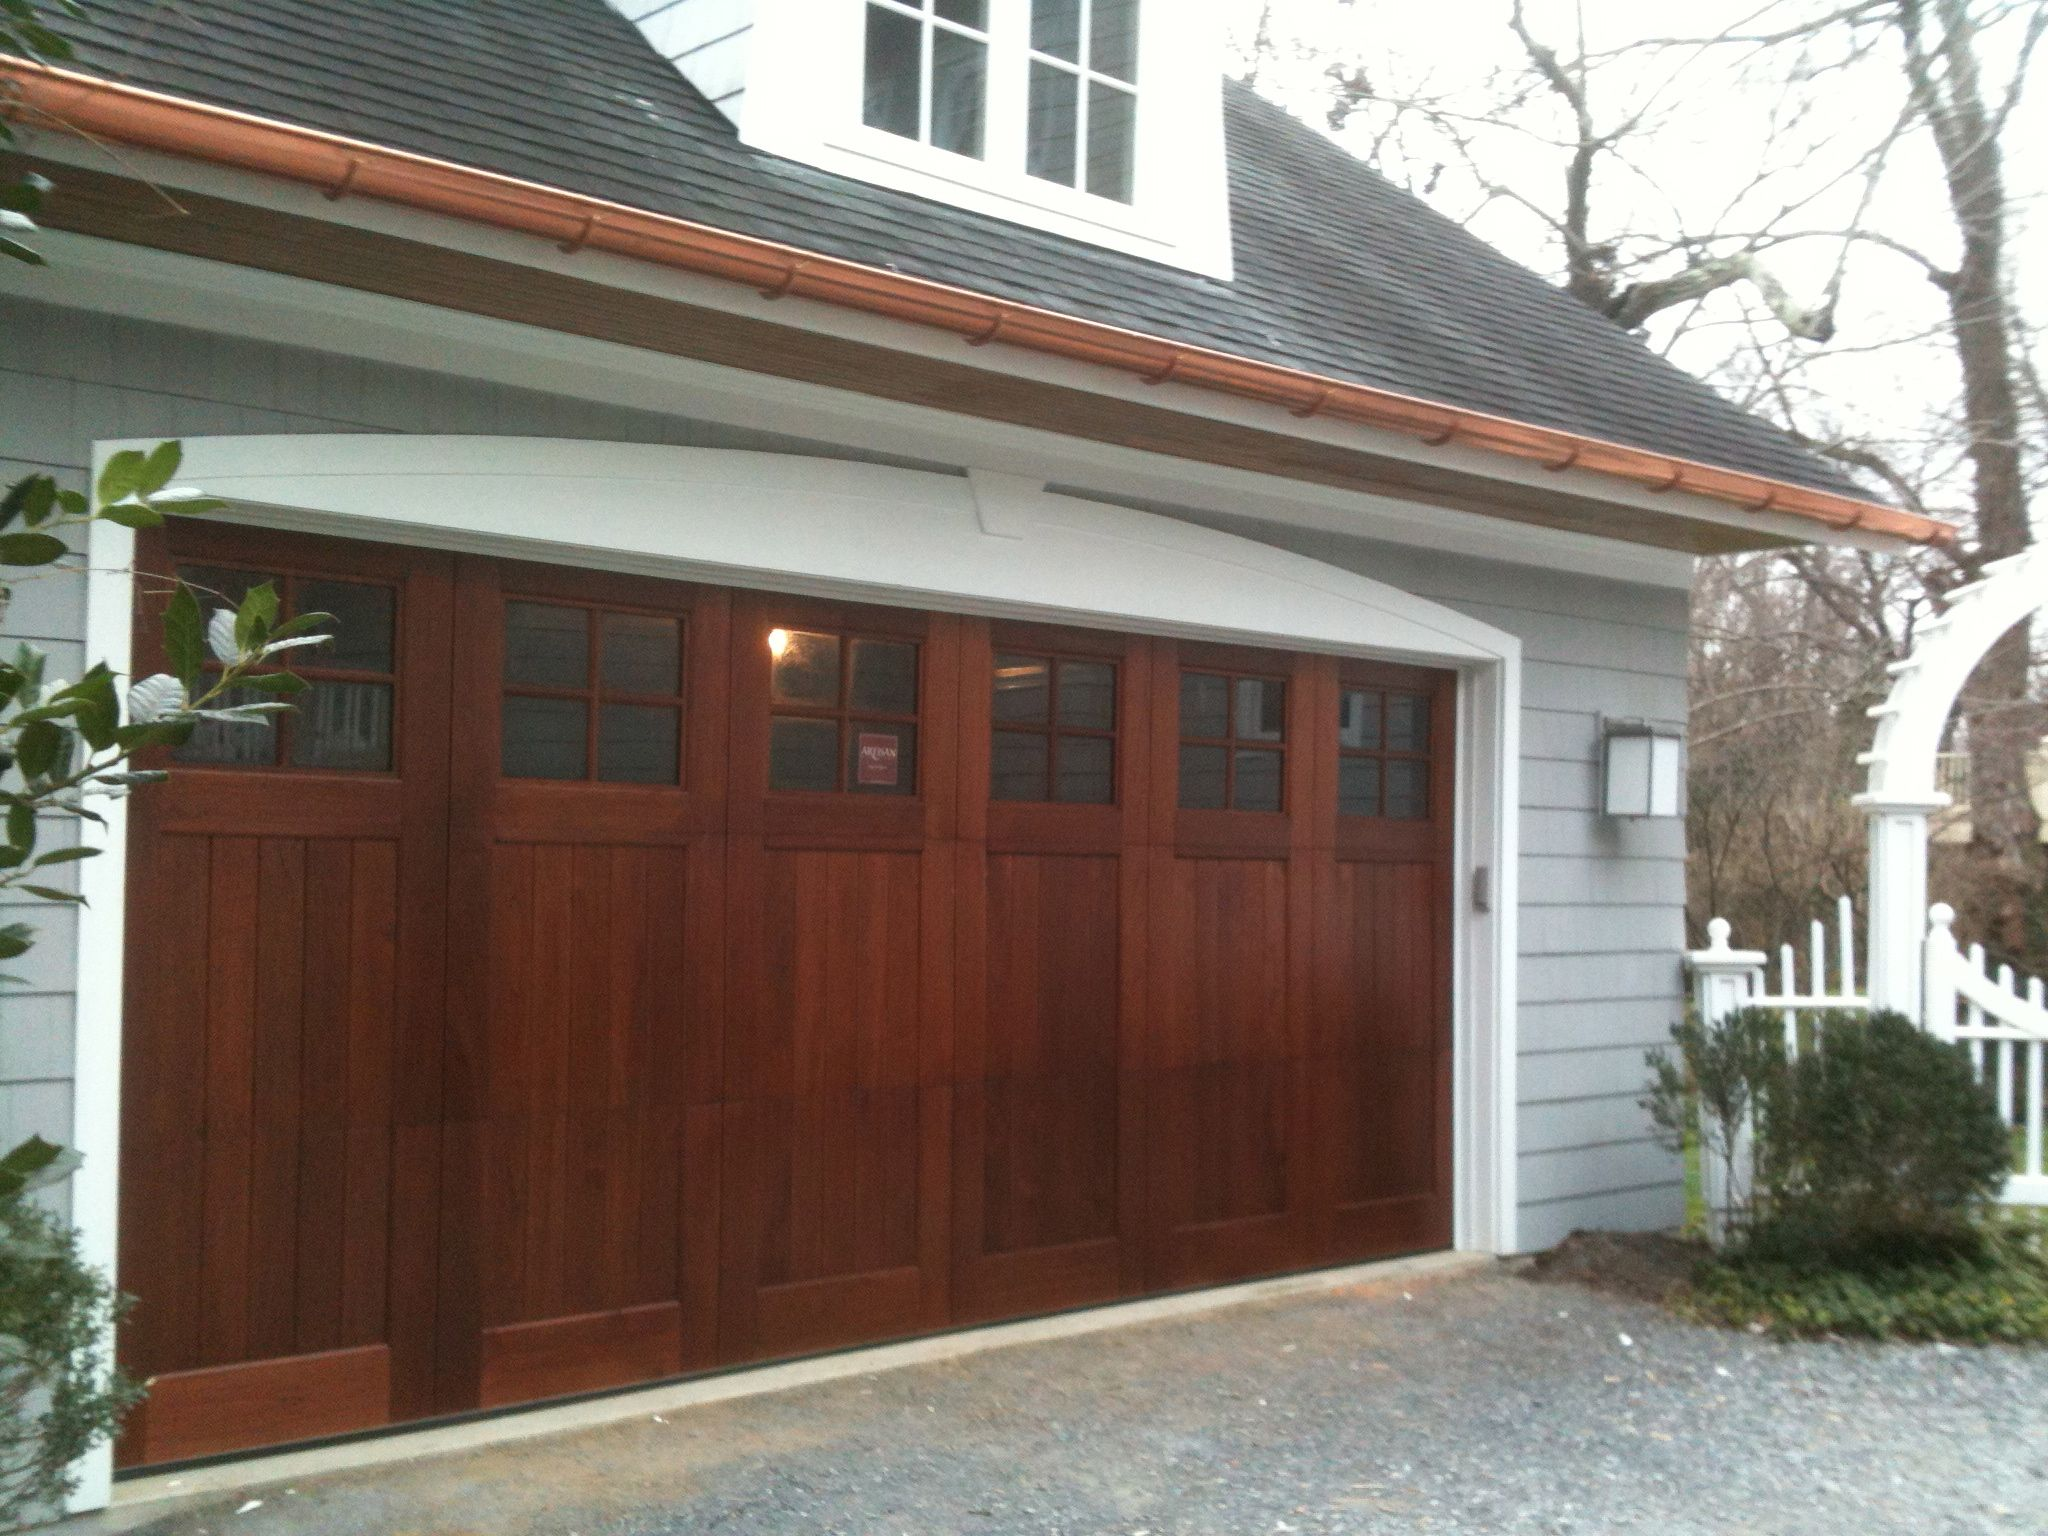 charm a systems vintage add doors door cedar entry garage wood reclaimed